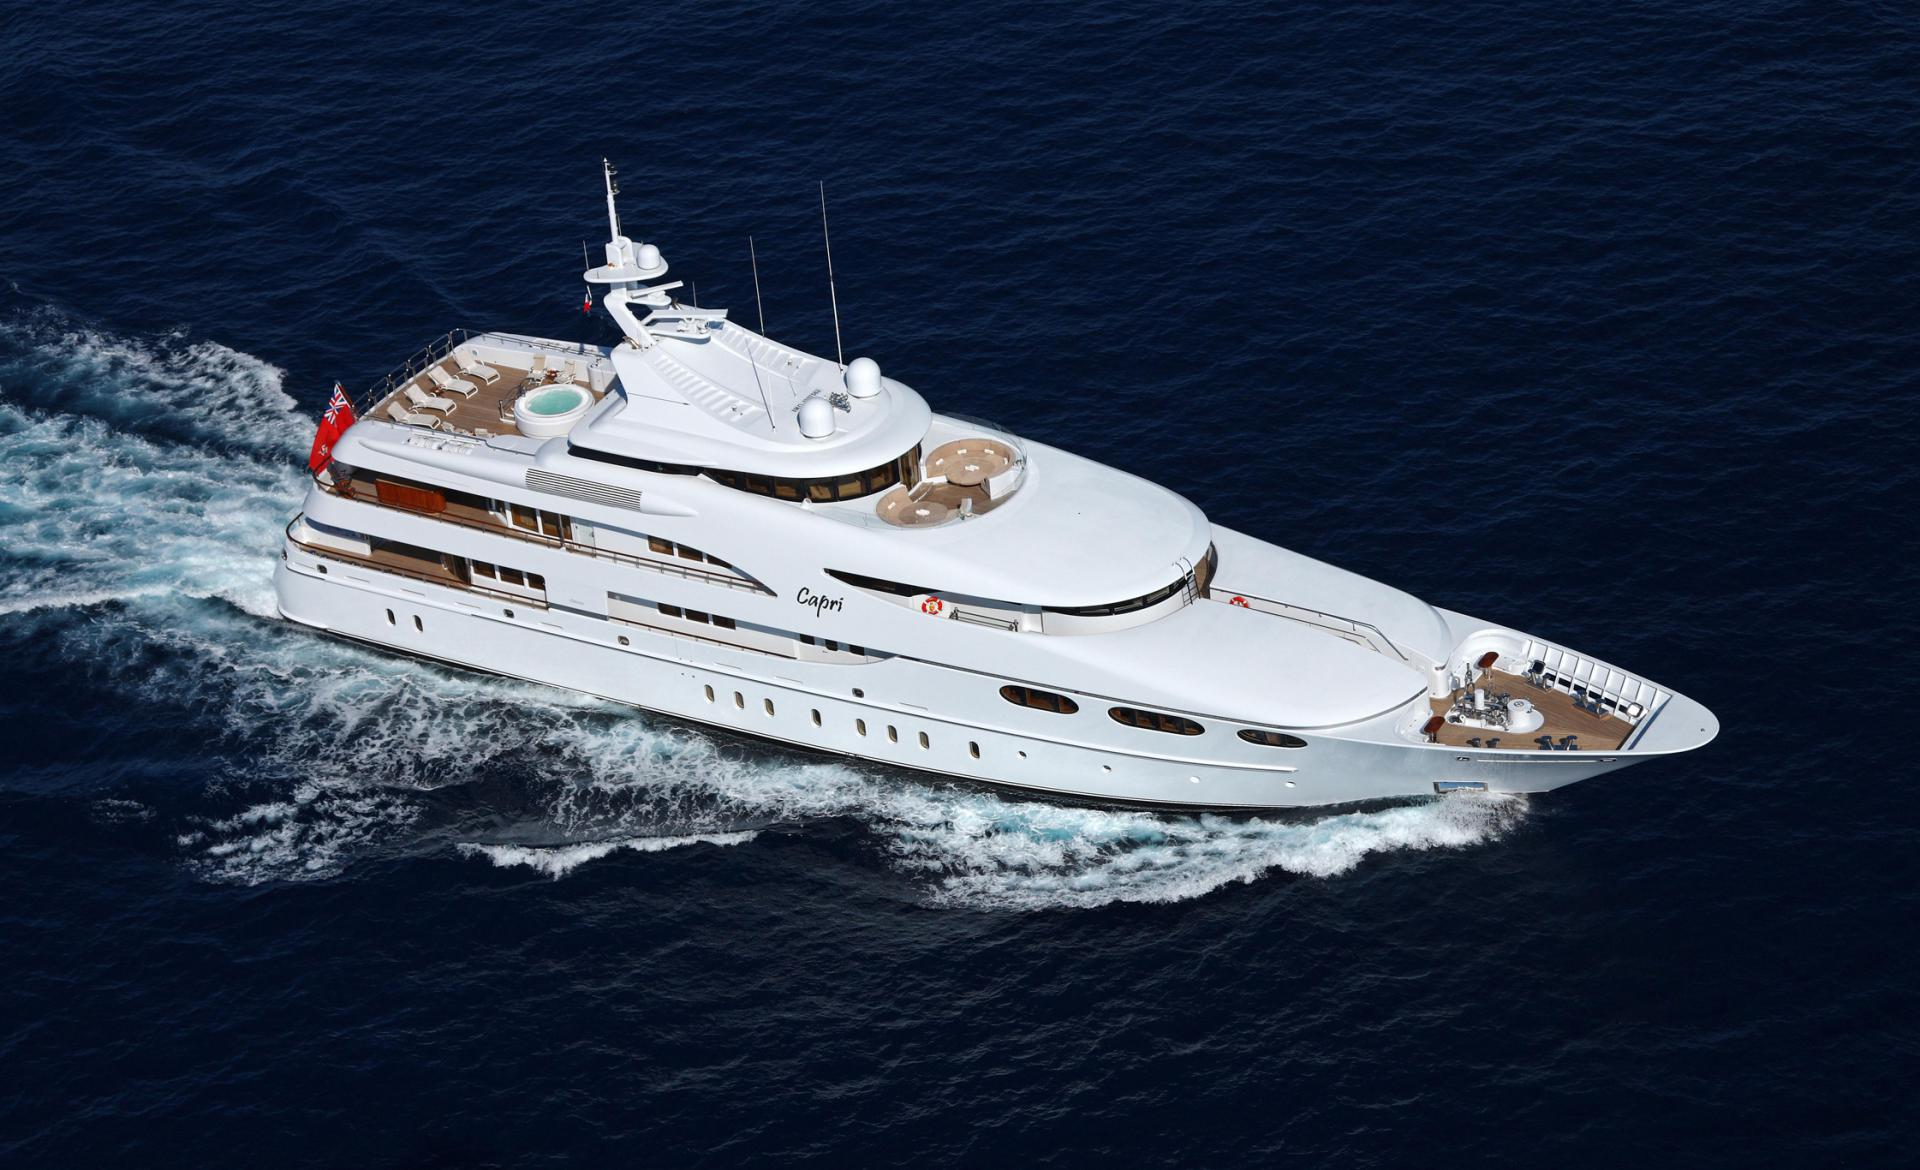 Yacht CAPRI By Lurssen - From The Air